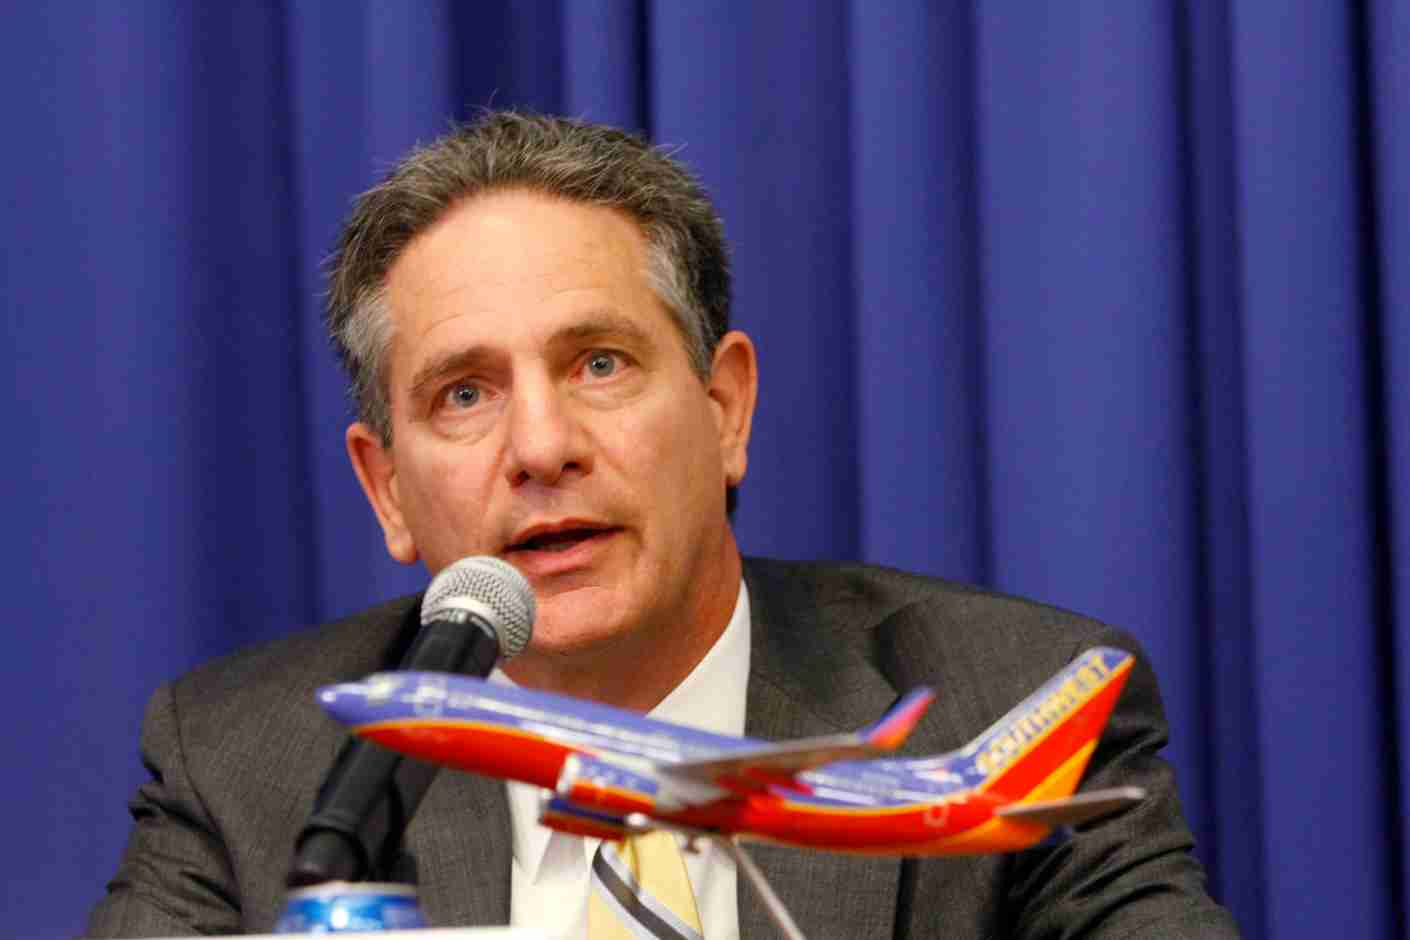 AirTran Chairman, President & CEO Robert L. Fornaro gives a press conference about Southwest Airlines